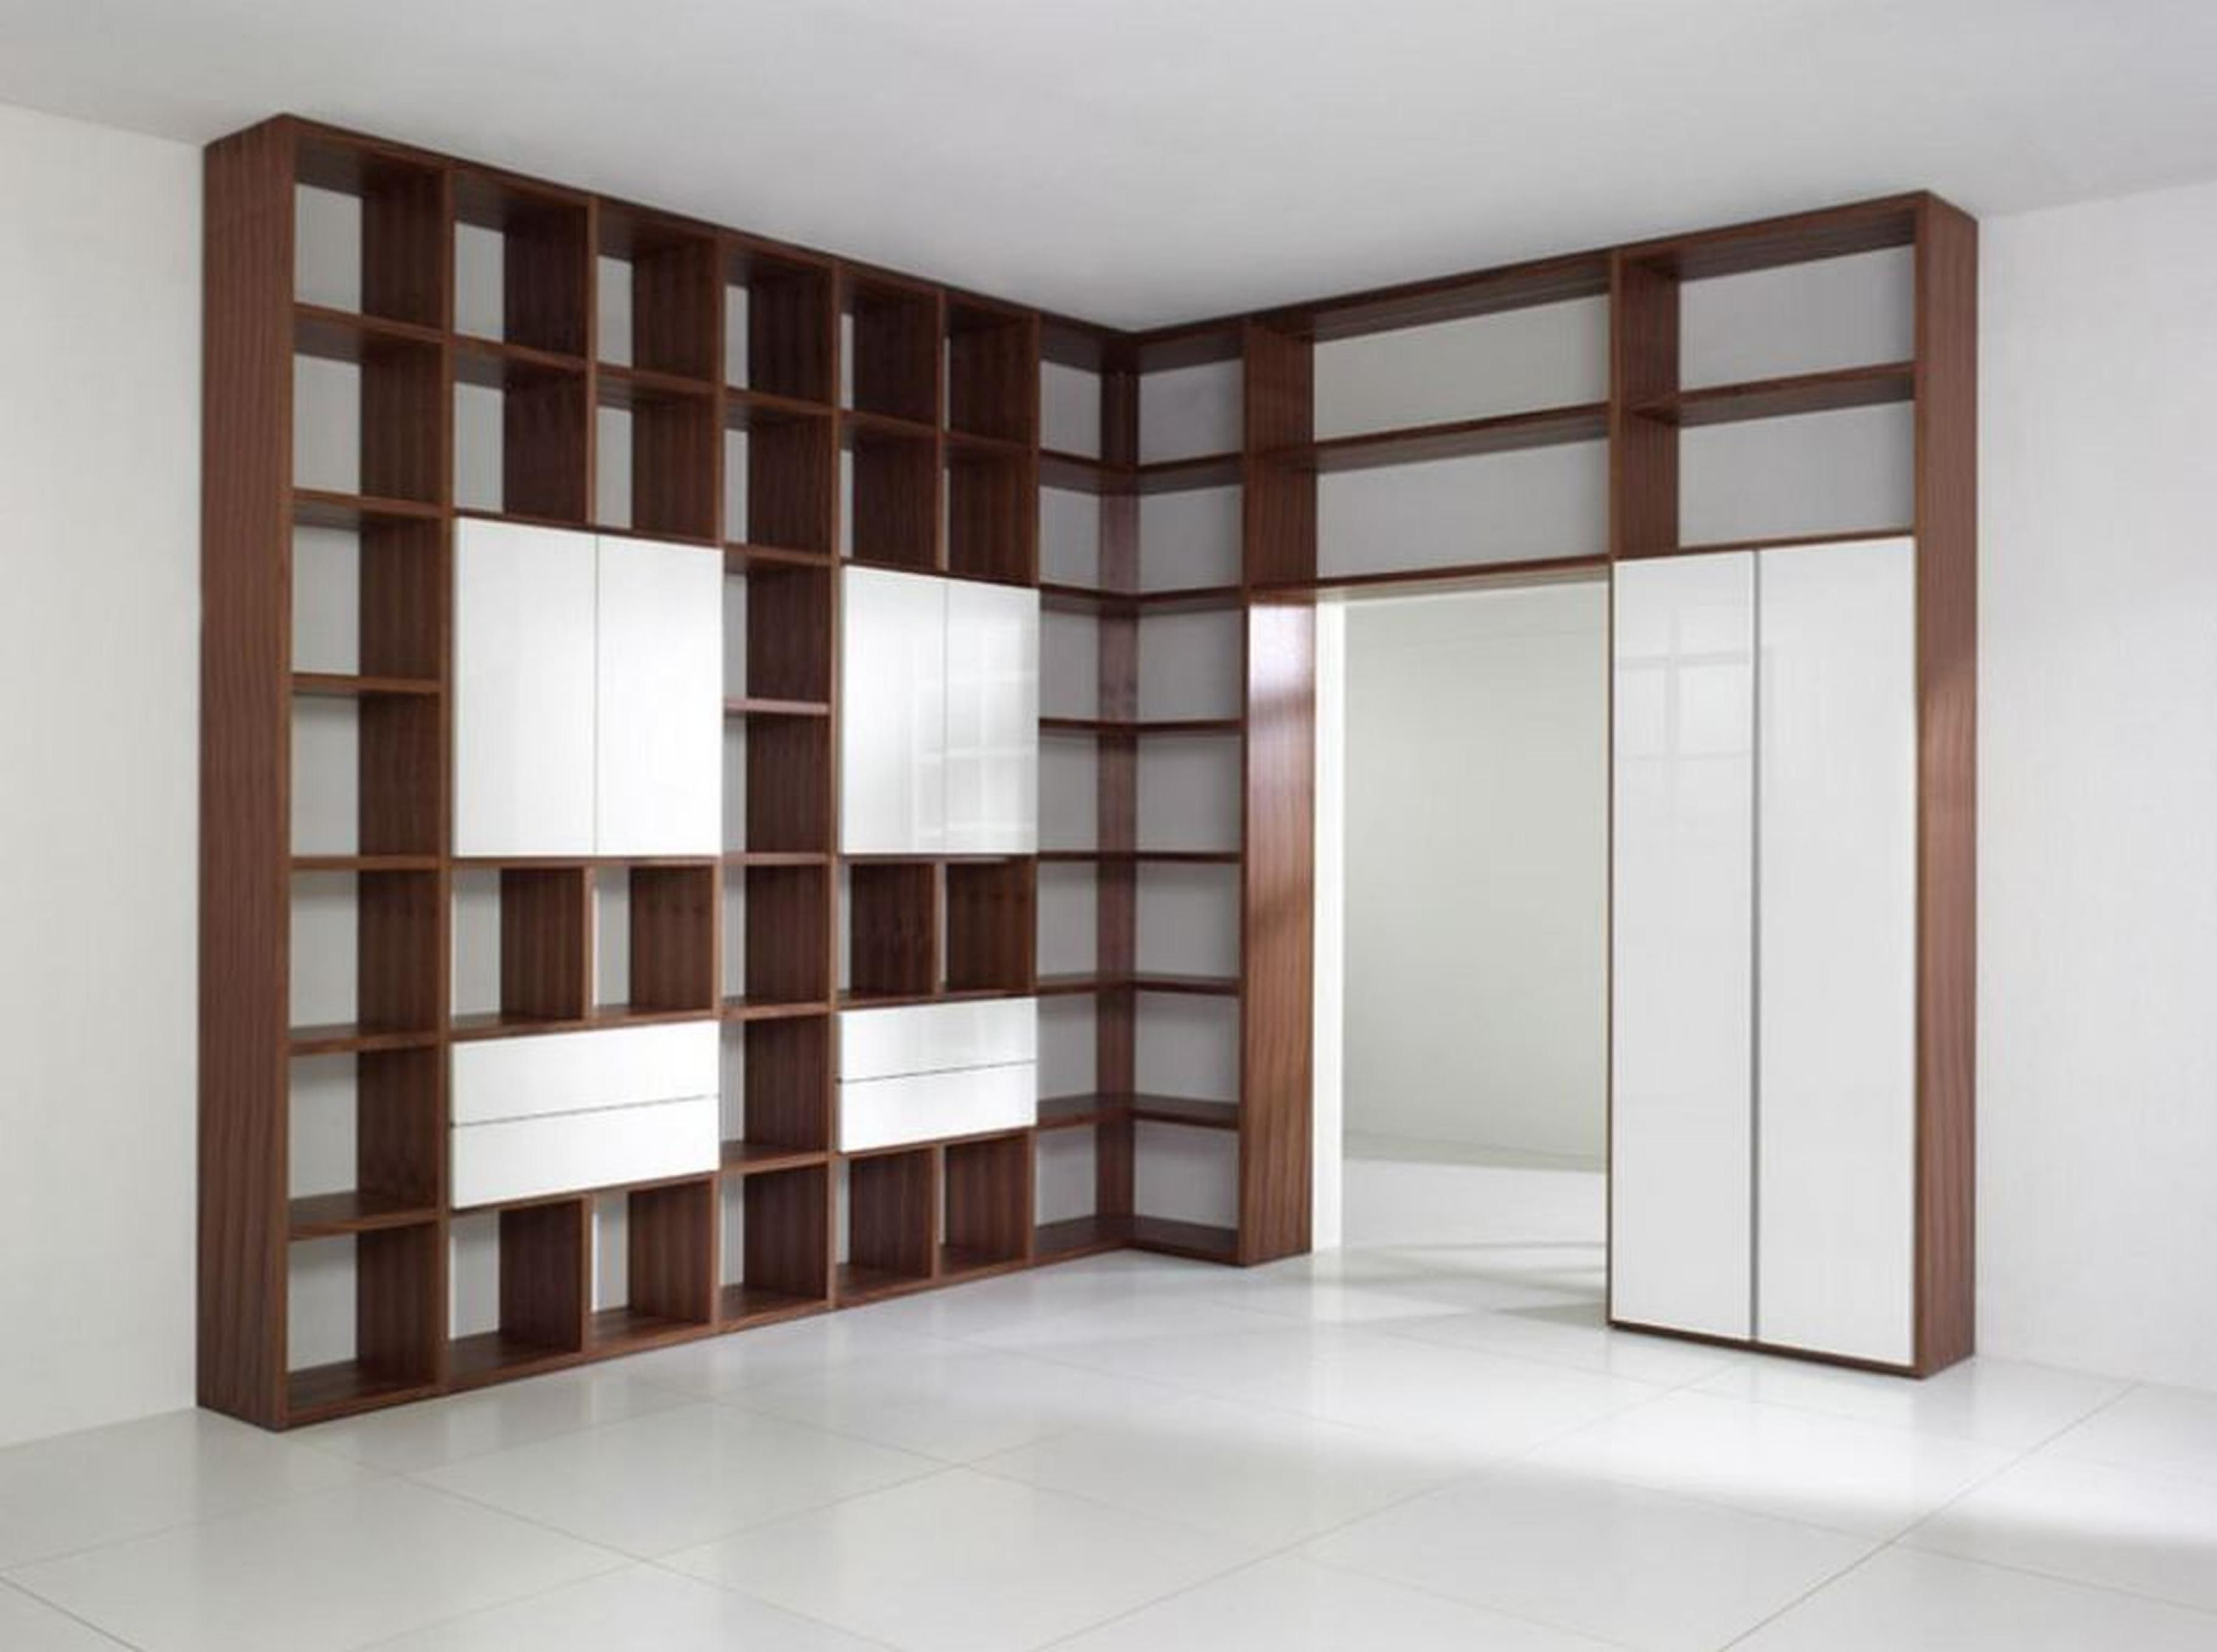 Wonderful White Brown Wood Modern Design Bookshelves Dvd Wood Mahogany Large Wall Brown Color Storage Shelves Interior Furniture At House As Well As Wire